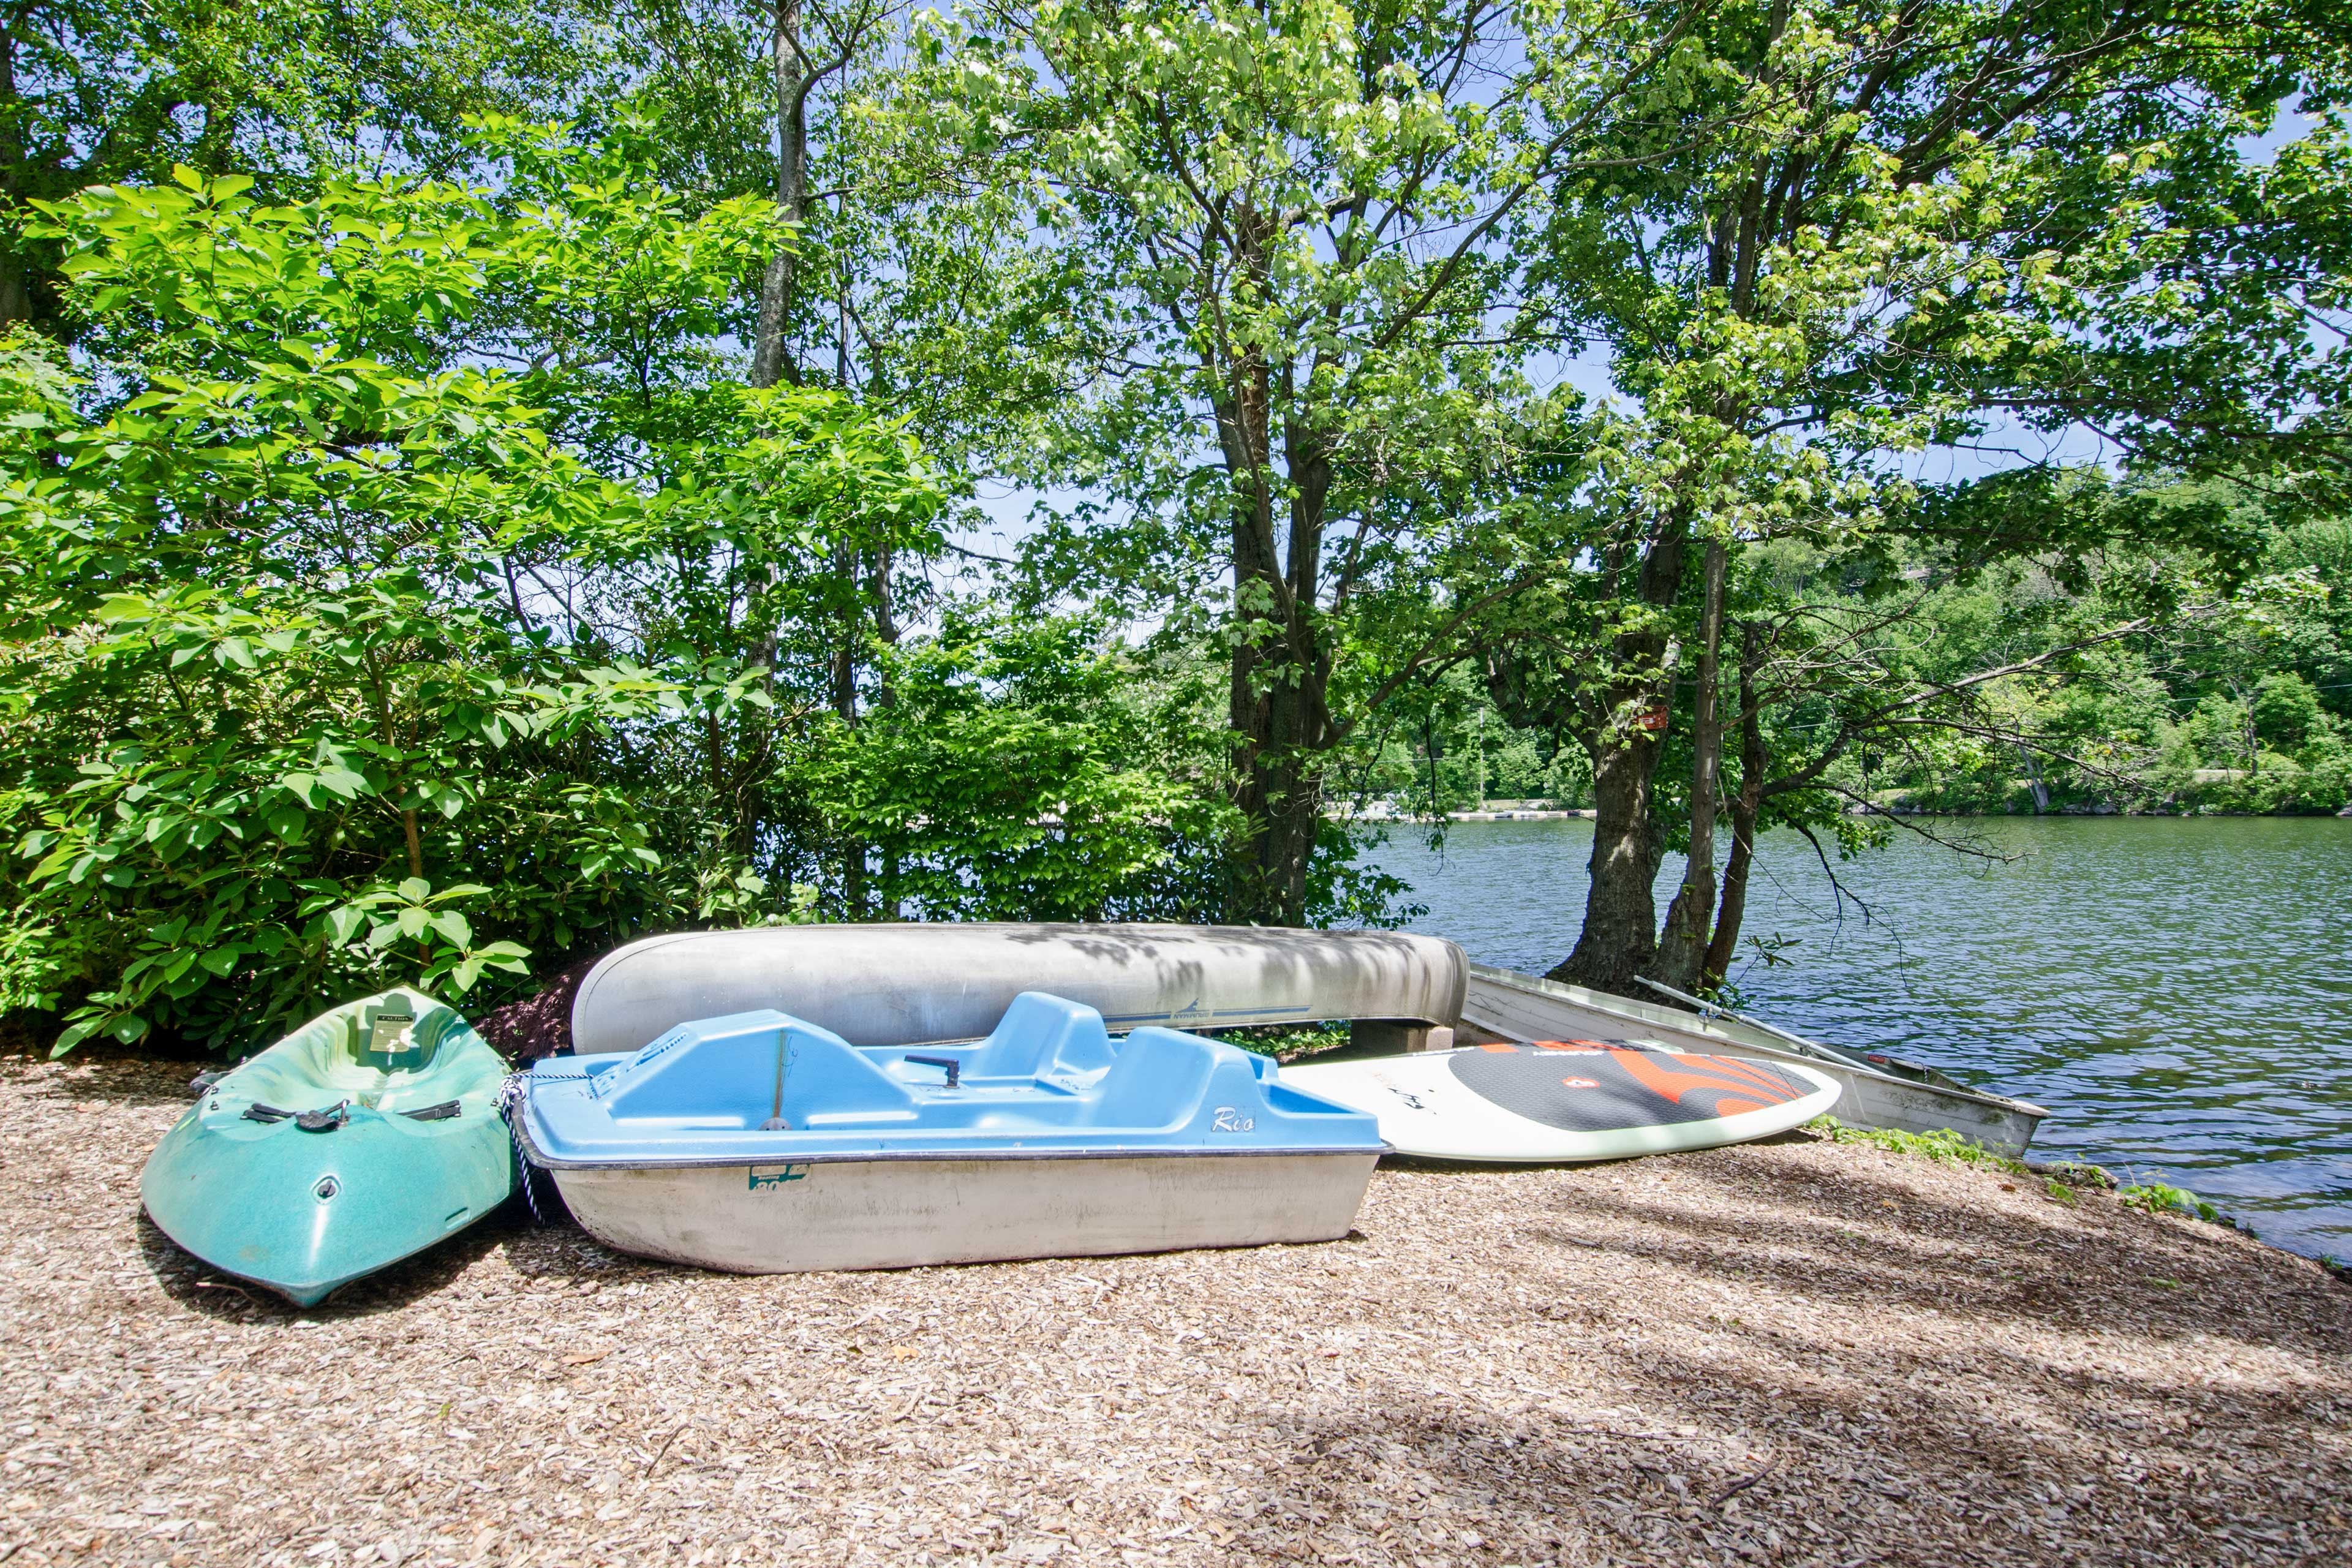 A canoe, sit-on-top kayak, stand-up paddle boards and more are provided.